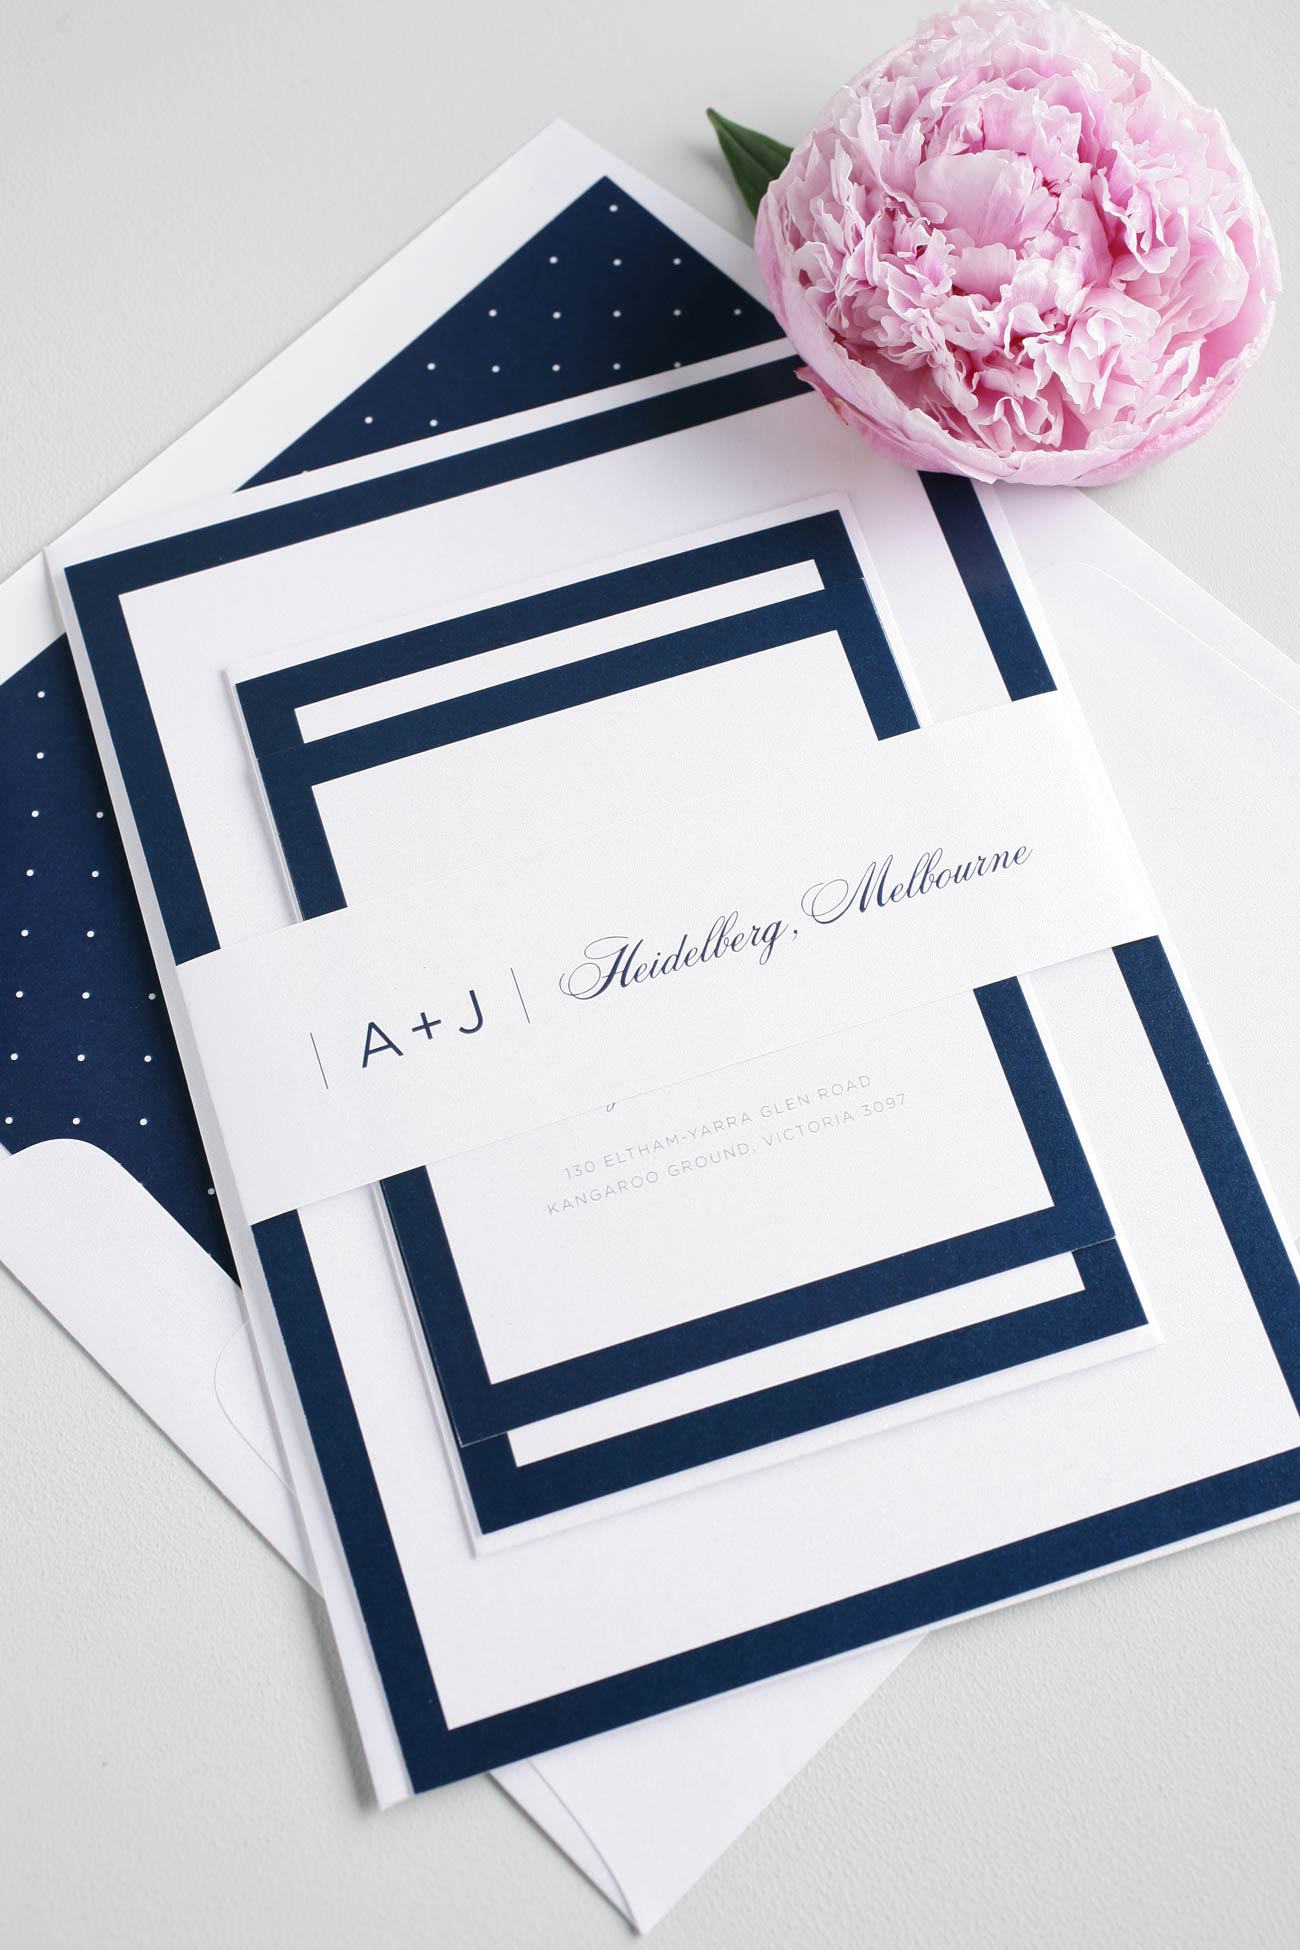 Modern wedding invitations with borders and polka dots